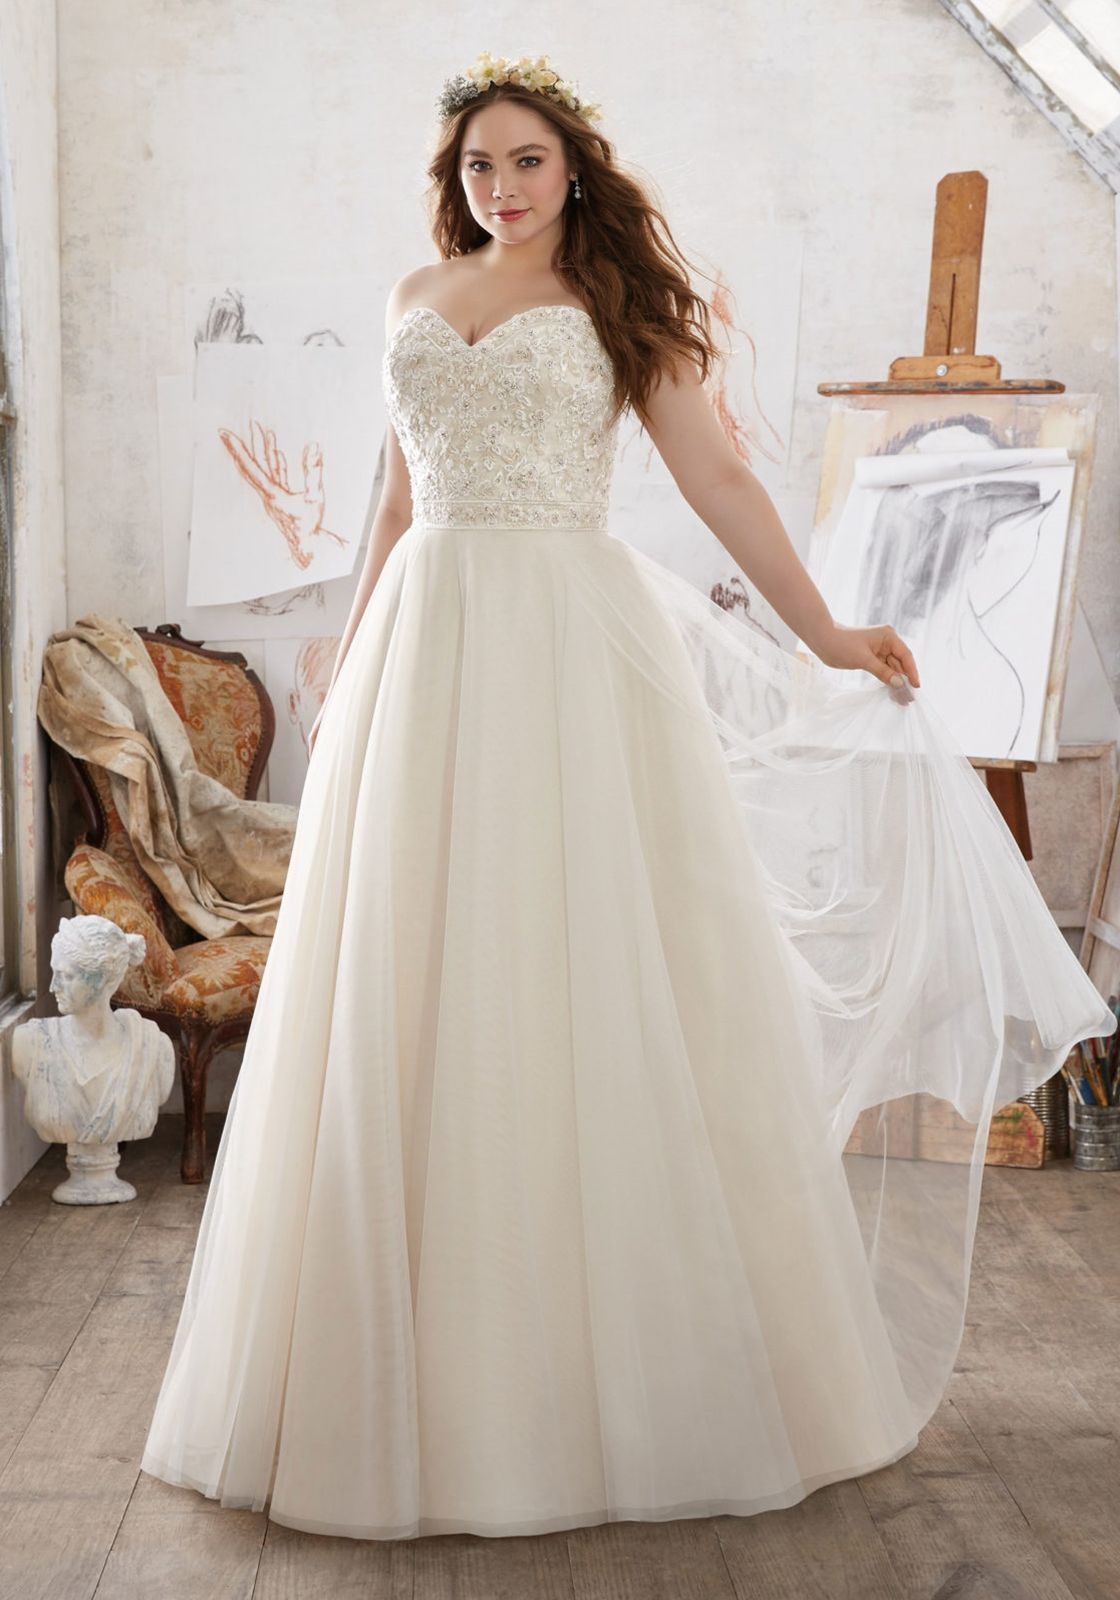 487db555b96 House of Brides - 13 Best Online Shops To Buy An Affordable Wedding Dress  https